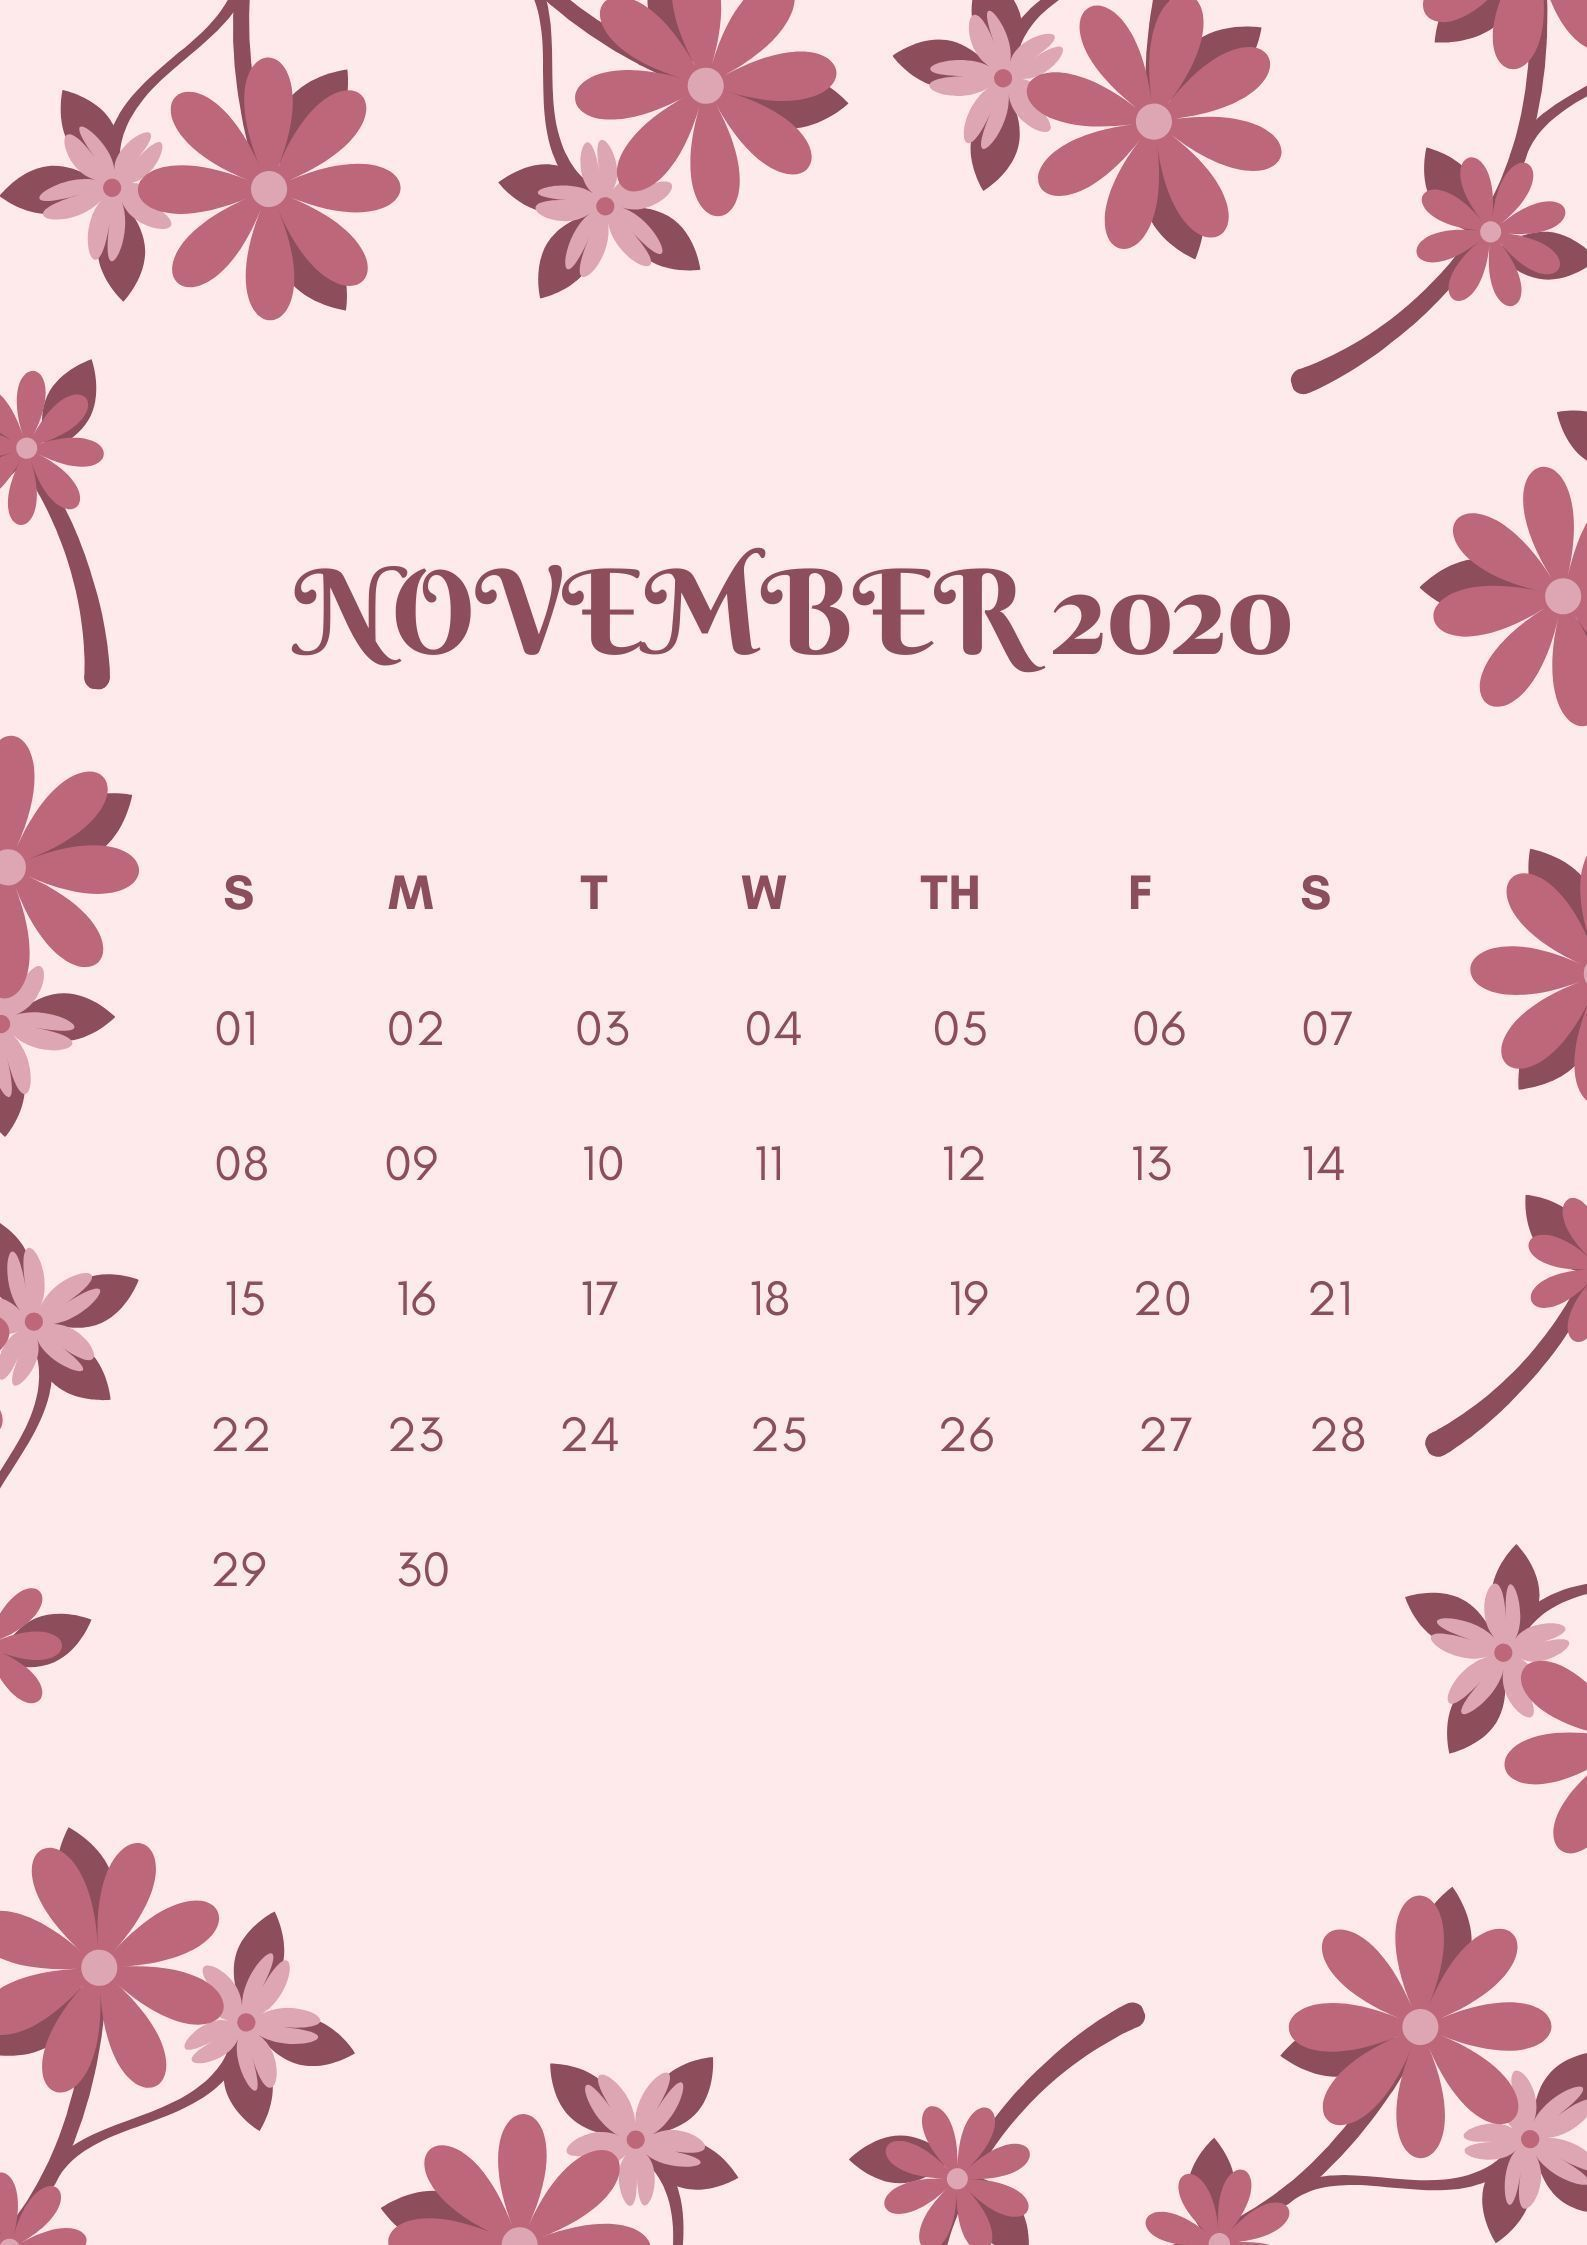 10 Best November 2020 Calendar Ideas and Inpiration Design Pink Flower in 2020